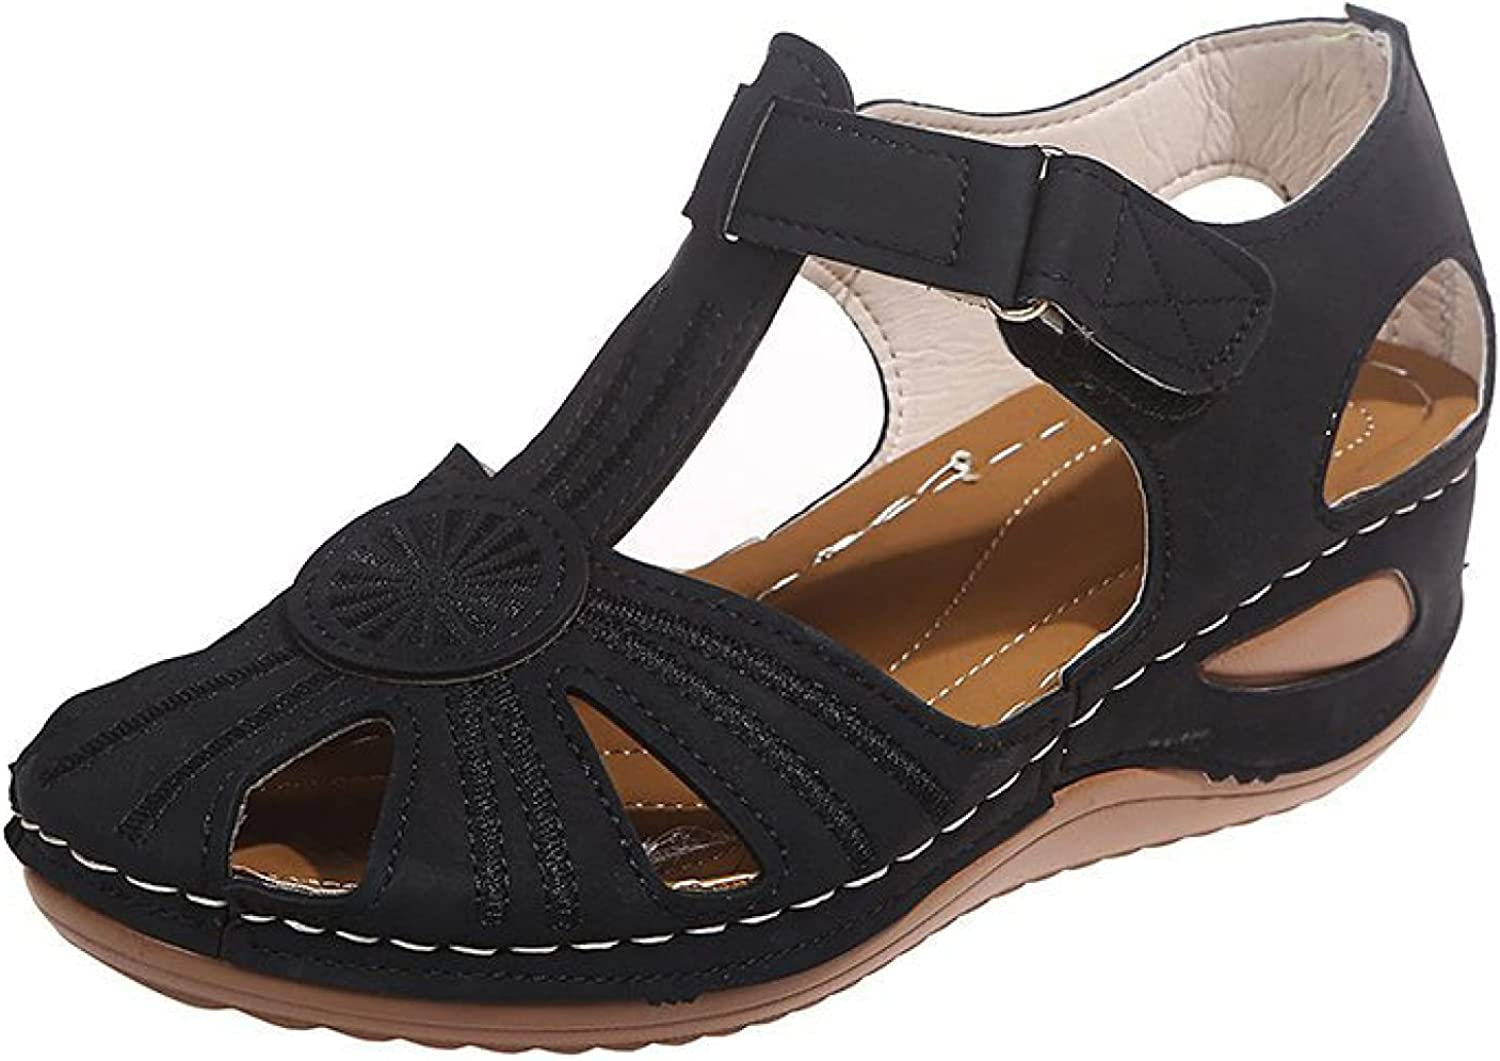 Women Wedges Cutout Design Comfortable PU Leather Lining Breathable Ankle Sandal Rest Outdoor Shoes